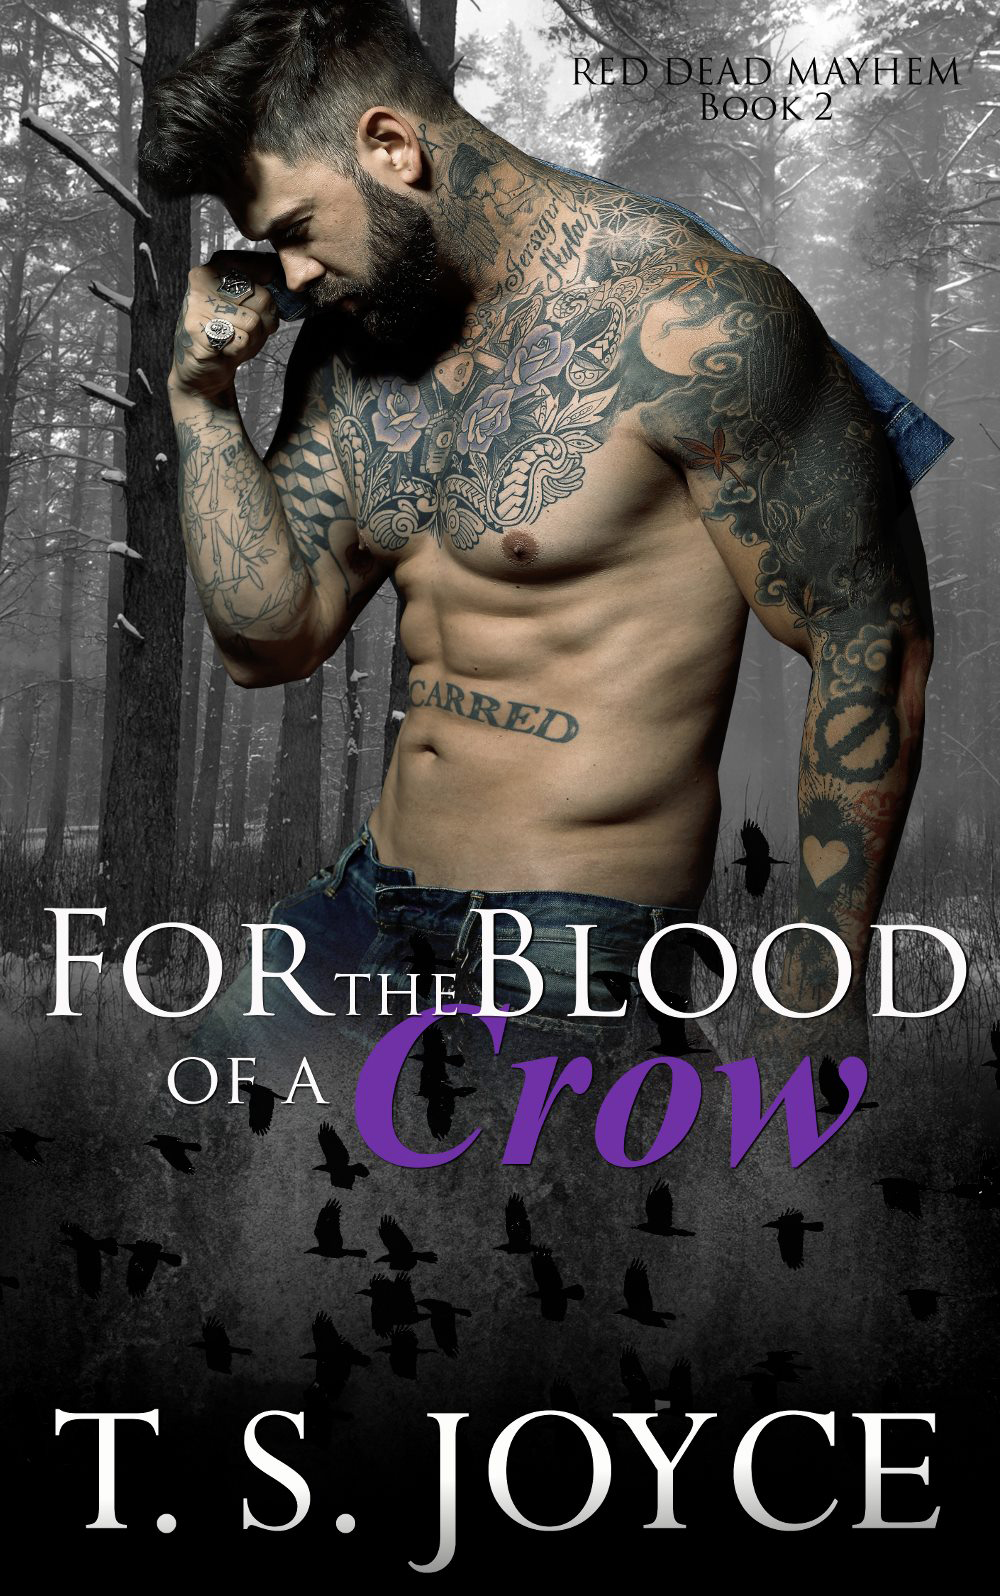 FOR THE BLOOD OF A CROW